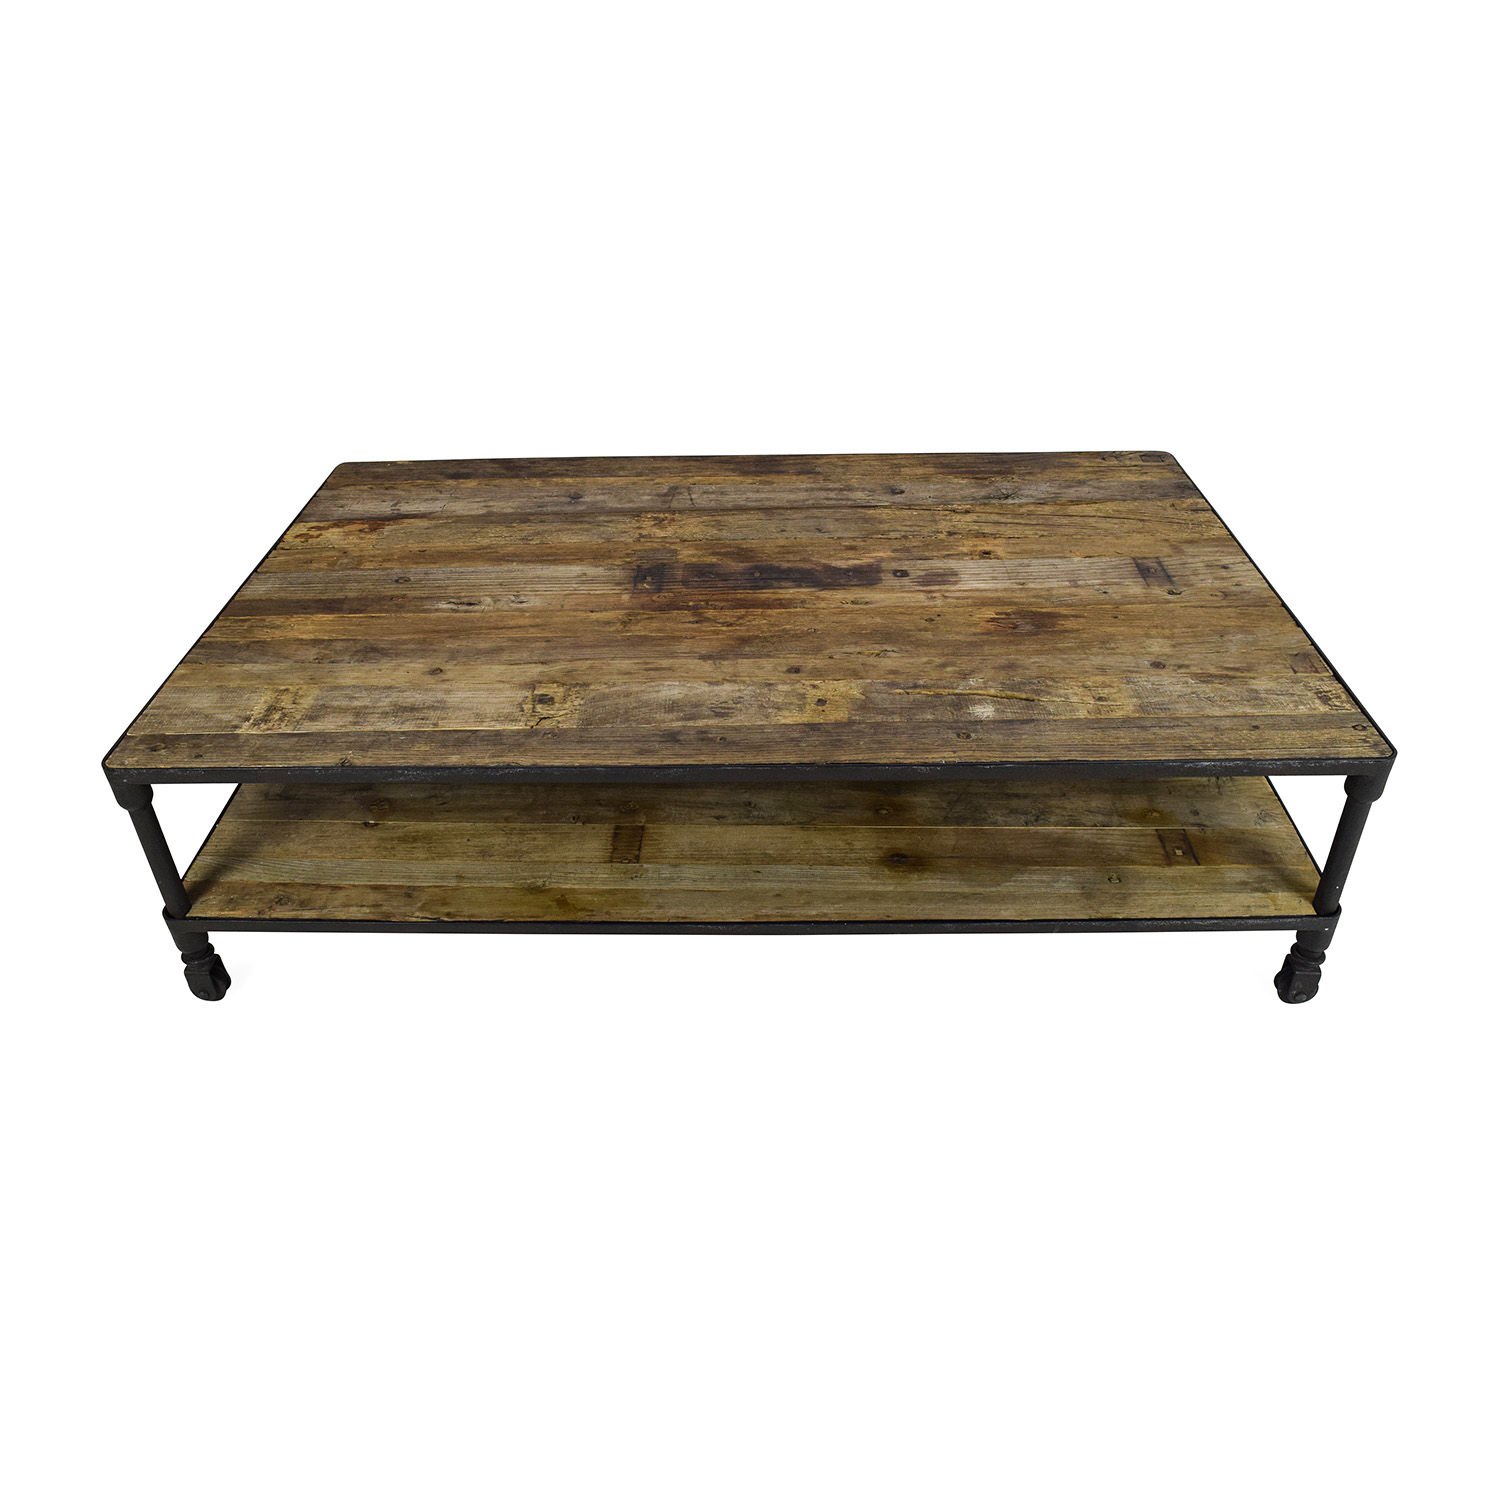 with rustic aufregend coffee of in canada brilliant solutions magnificent chinese best table ideas stools lovely majestic square oversized style